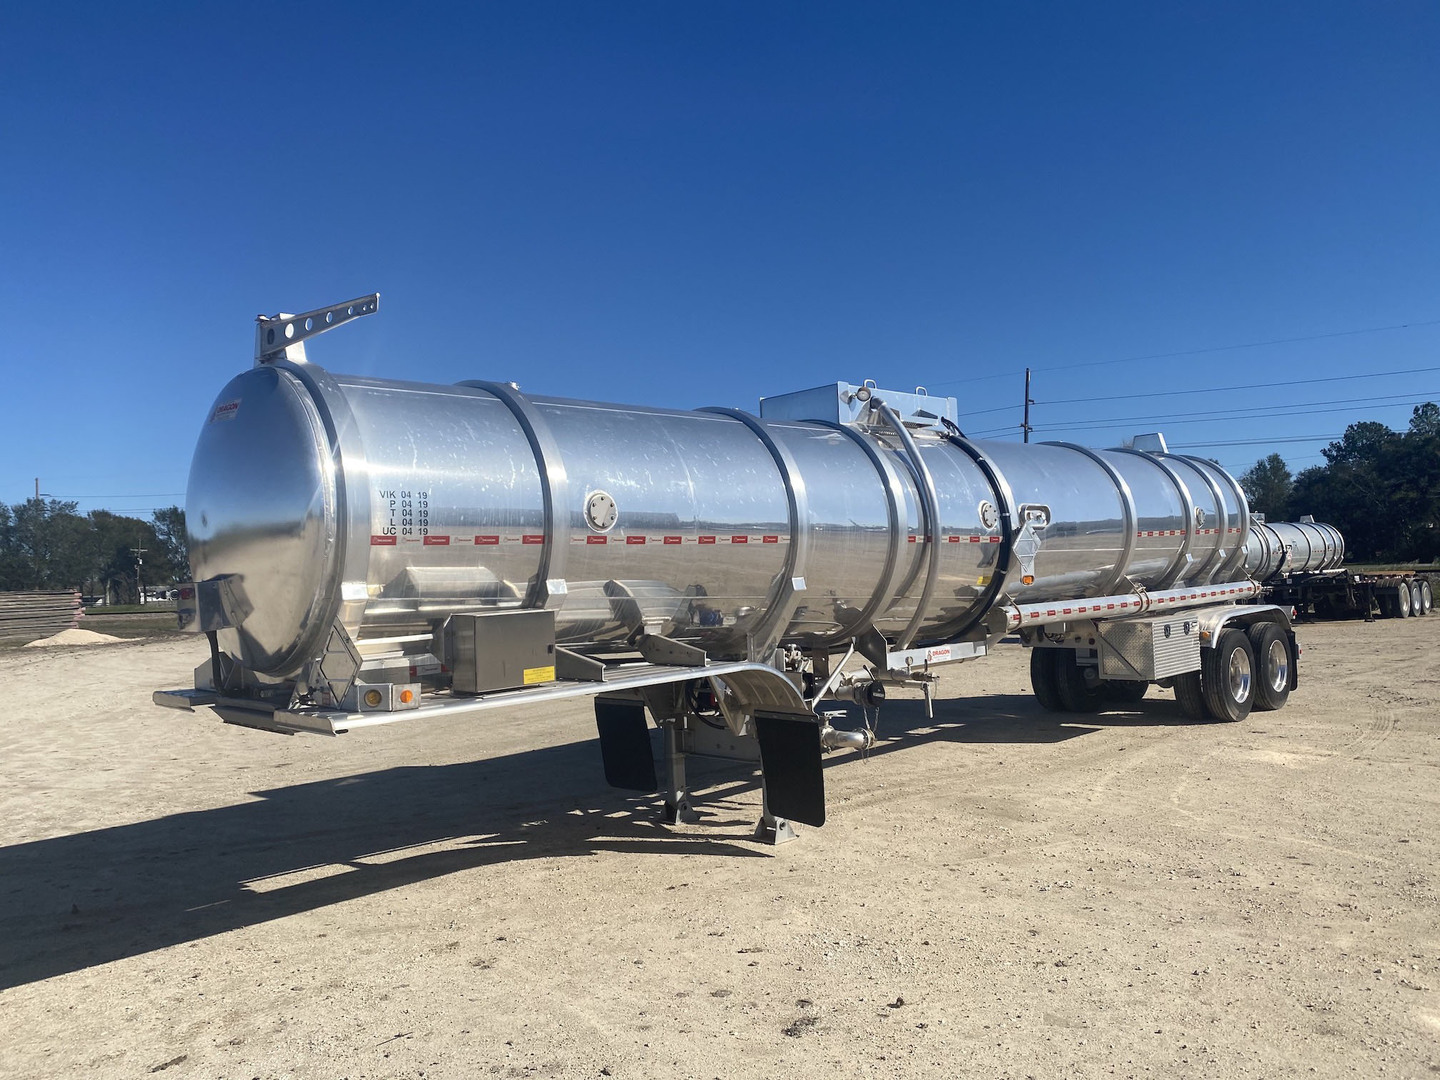 2020 Dragon 200 BBL T/A Aluminum Crude Oil Trailer